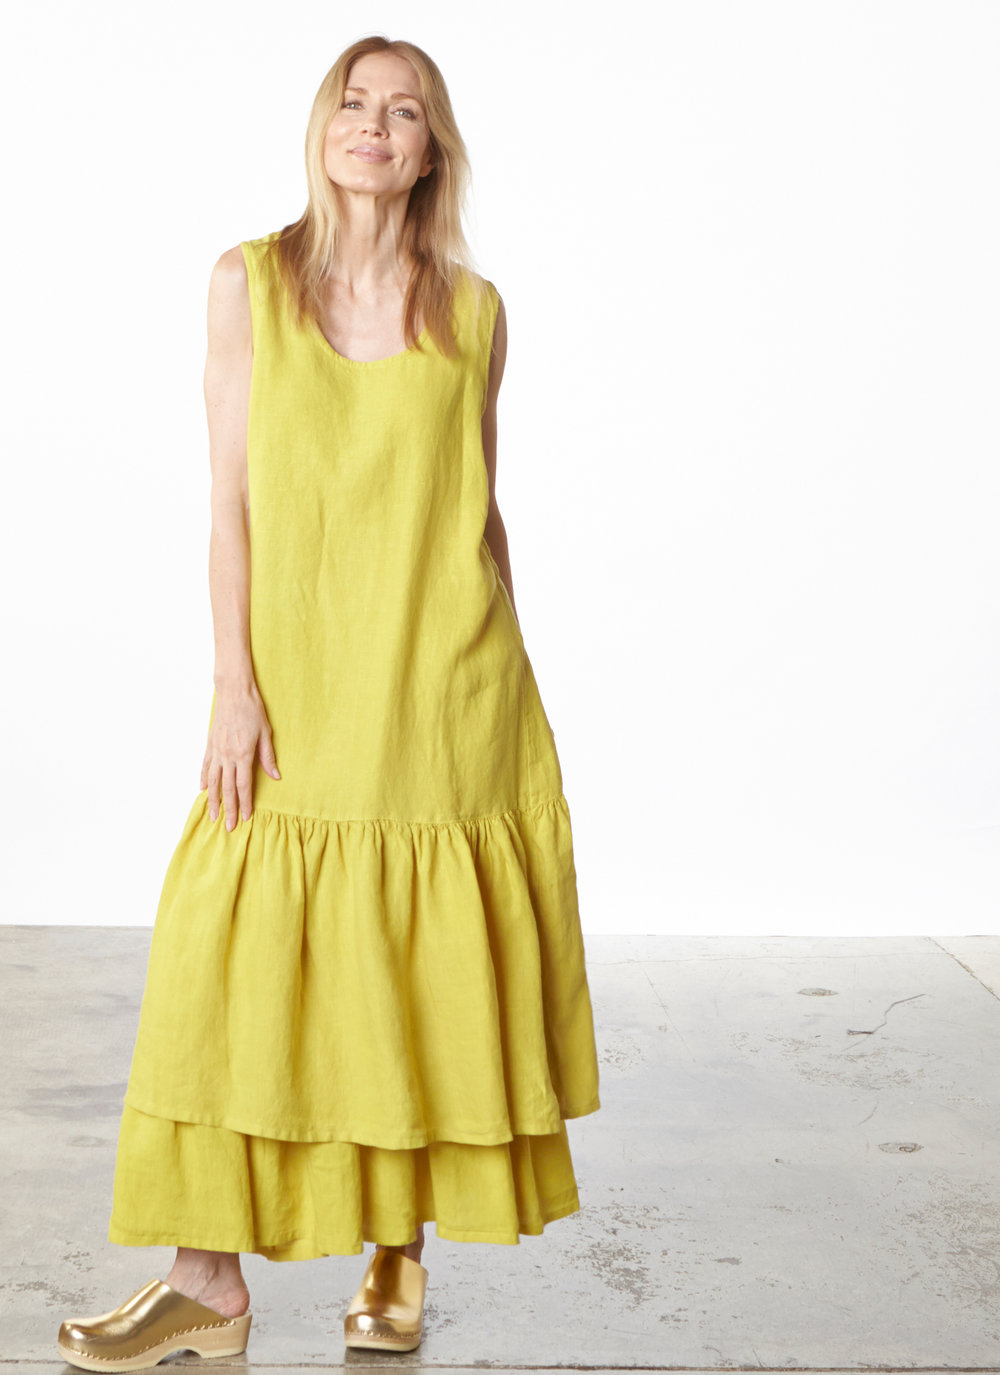 Salome Dress, Ruffle Skirt in Oriole Light Linen